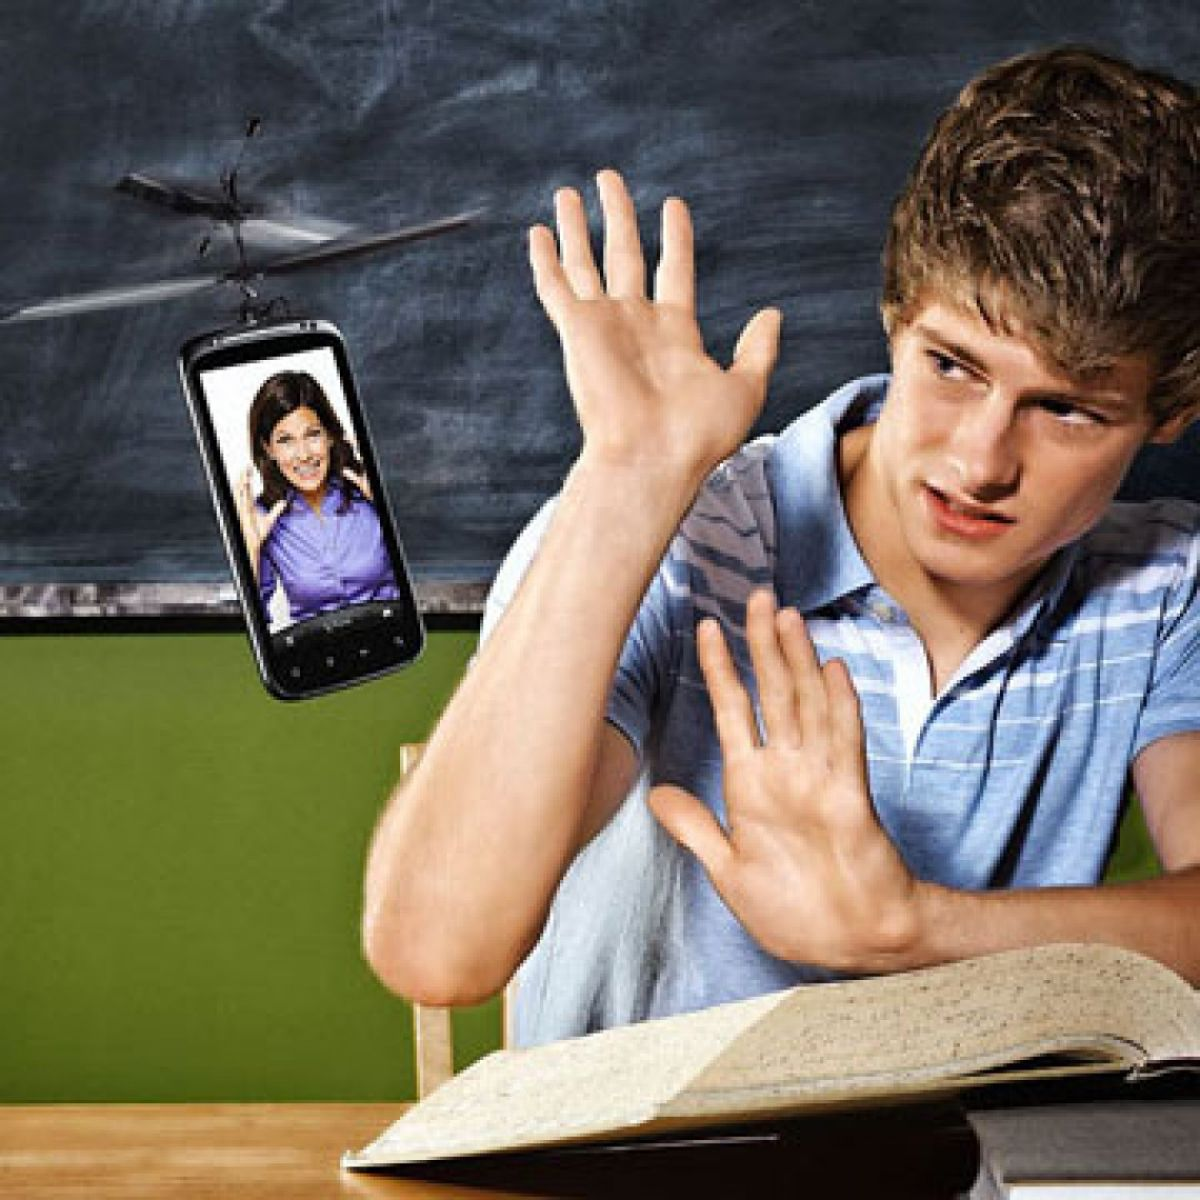 Photo illustration of a boy studying an open book, being disturbed by a hovering cellphone showing an image of his mother